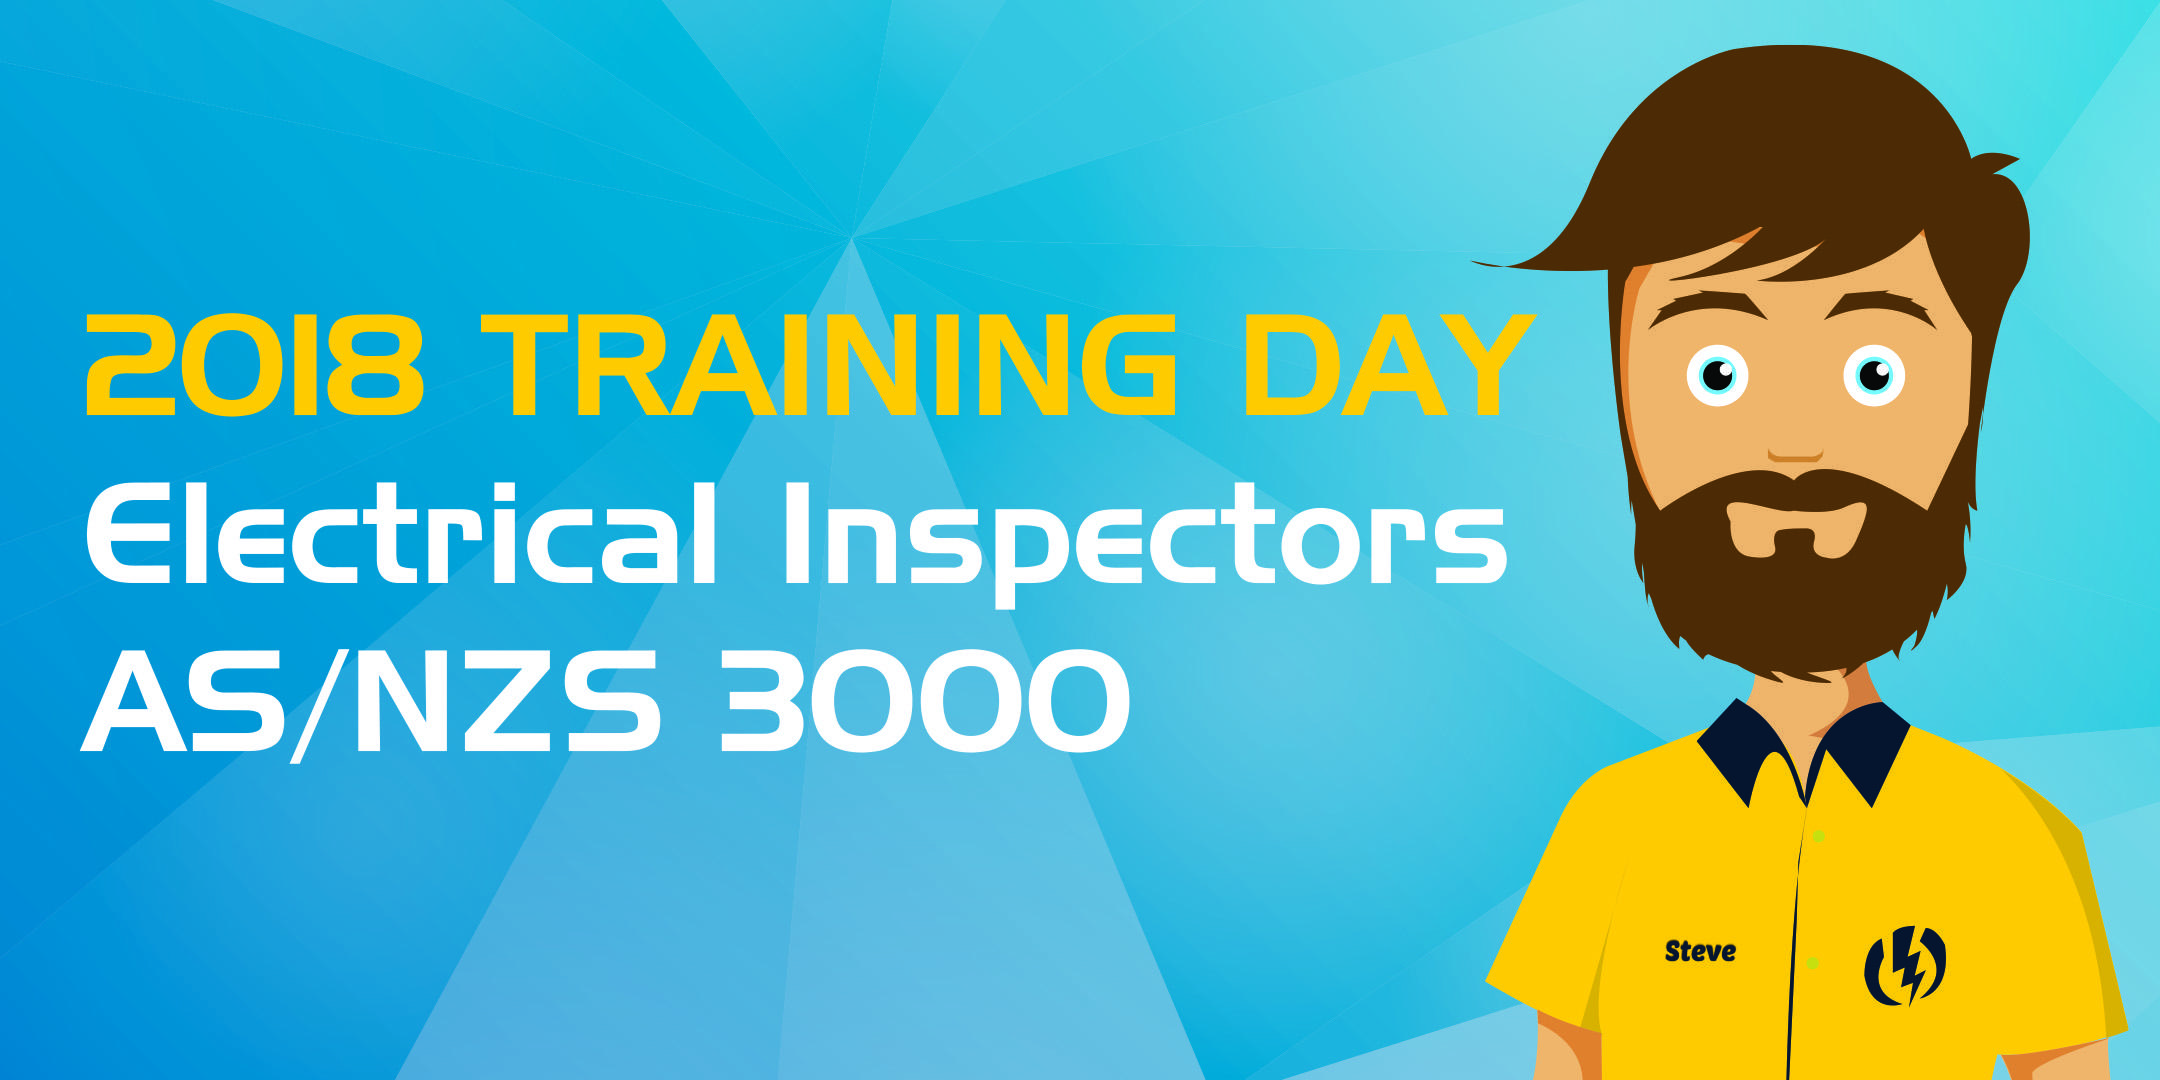 Training Day For Electrical Inspectors As Nzs 3000 14 Apr 2018 Wiring Rules Book